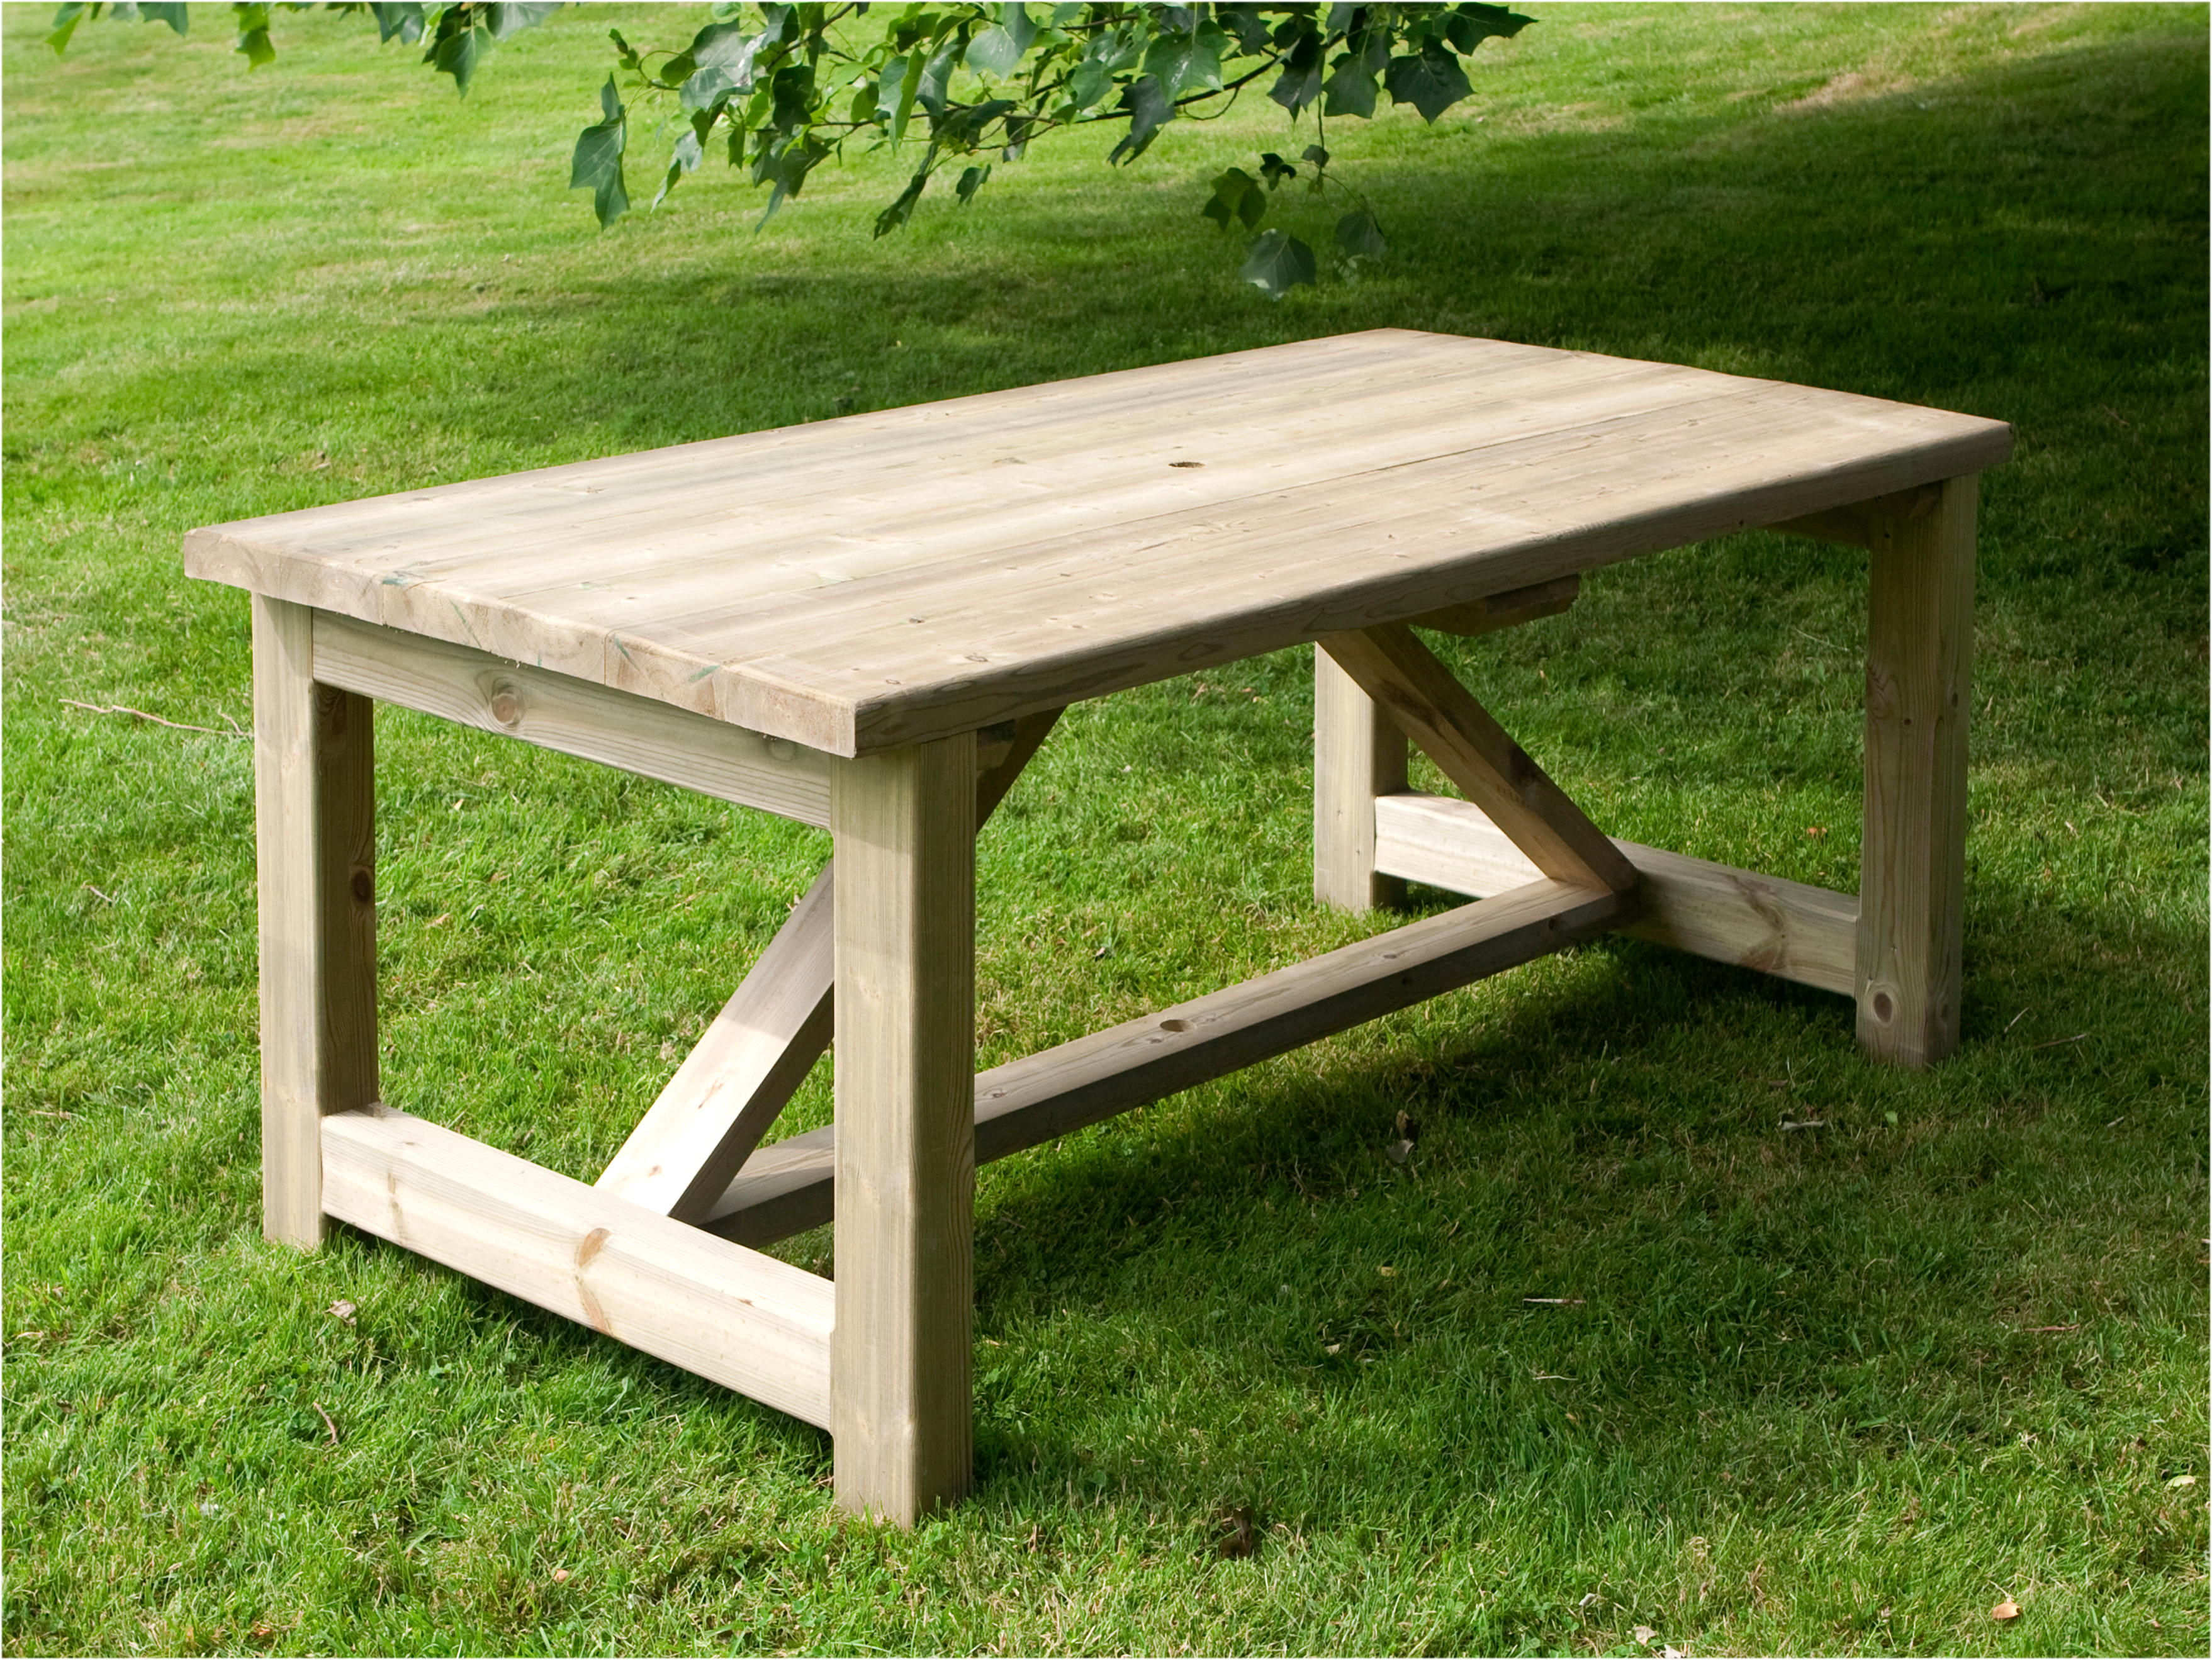 the lightweight tables are easy to move. the garden table should have JPOGSAD